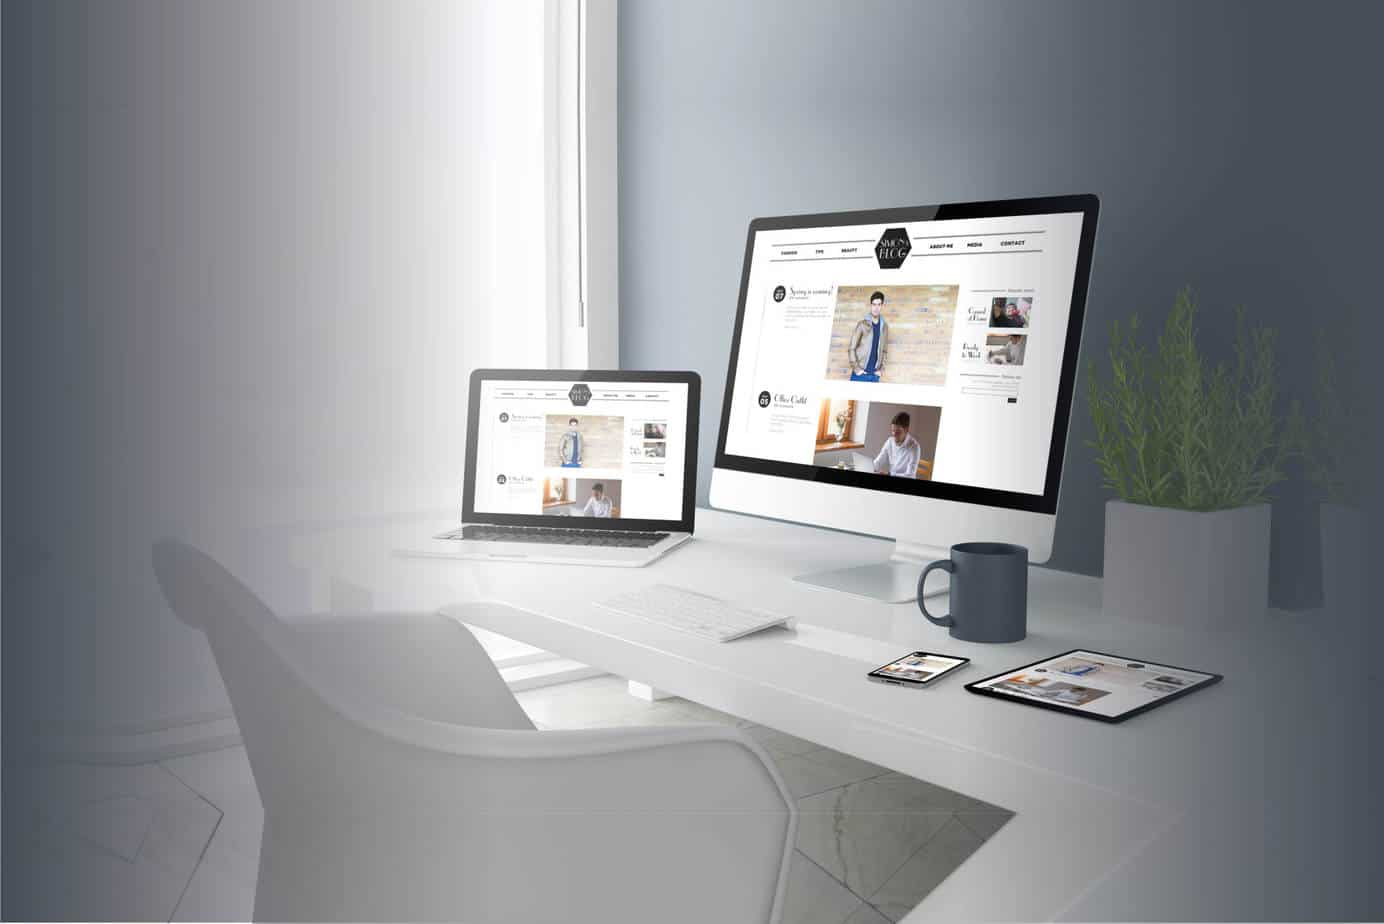 A Design agency image of responsive web design on various devices